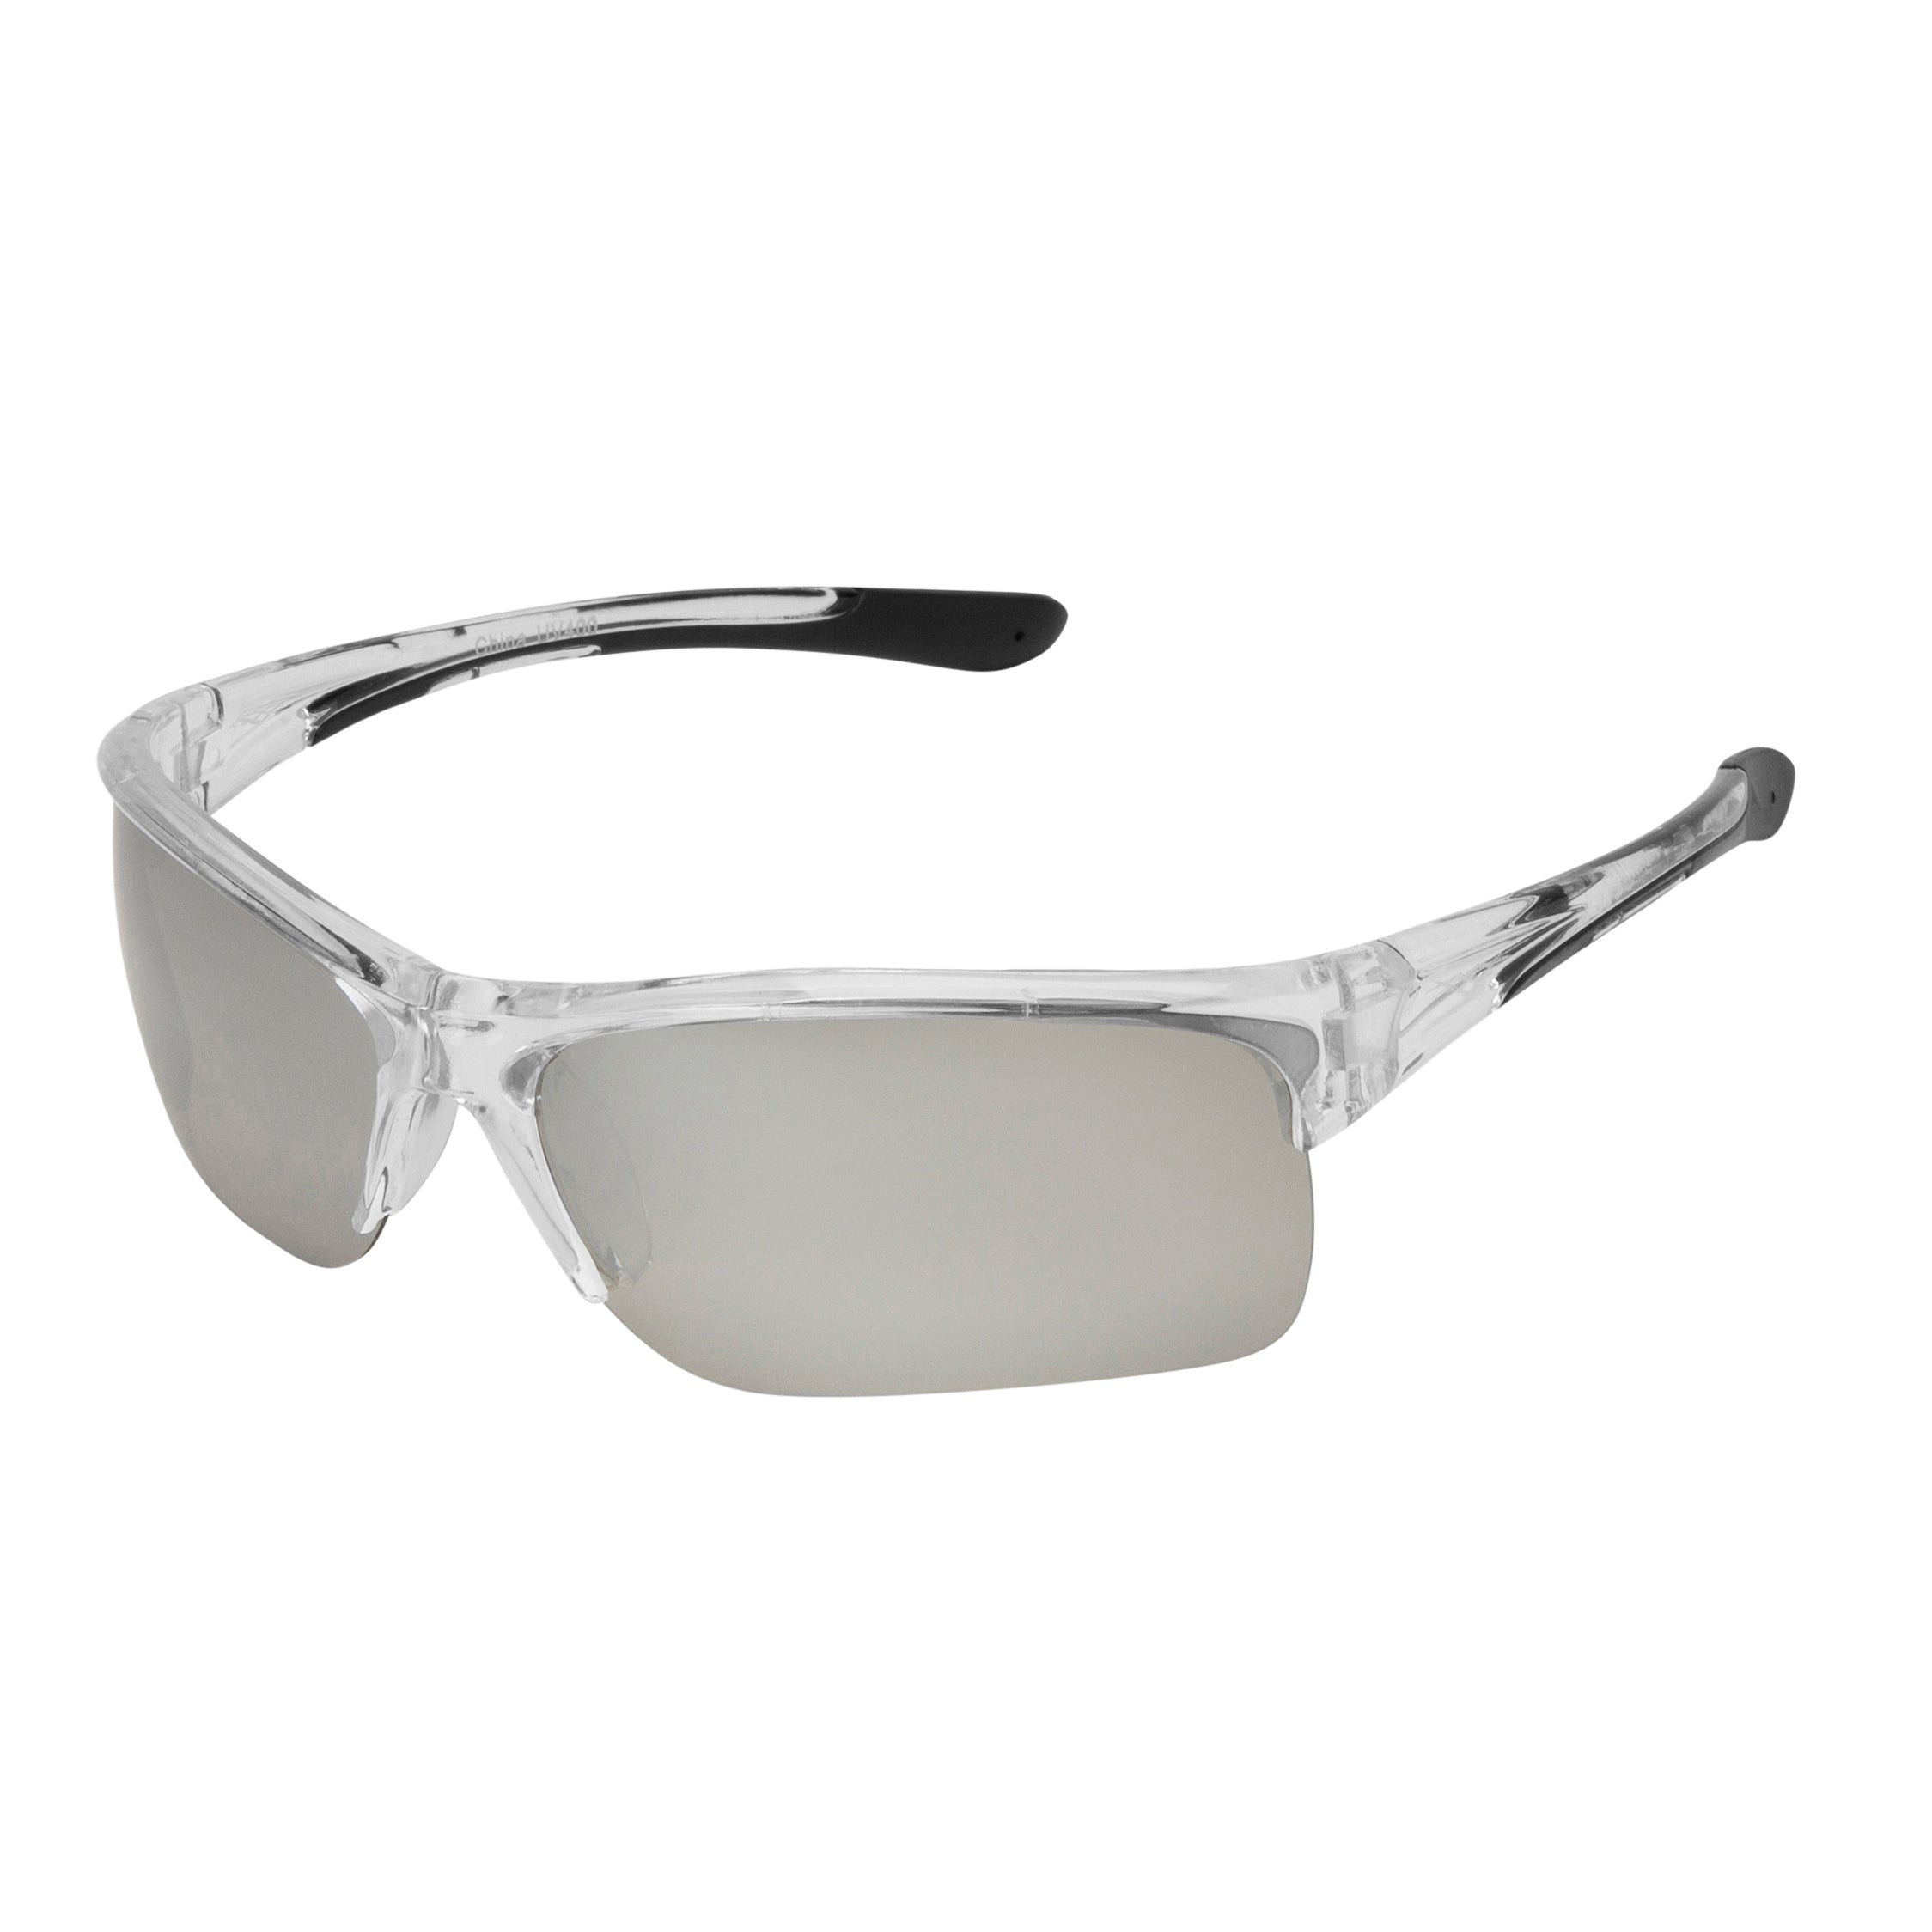 5012 PVX - PolarVX Polarized Sport Wrap Sunglasses